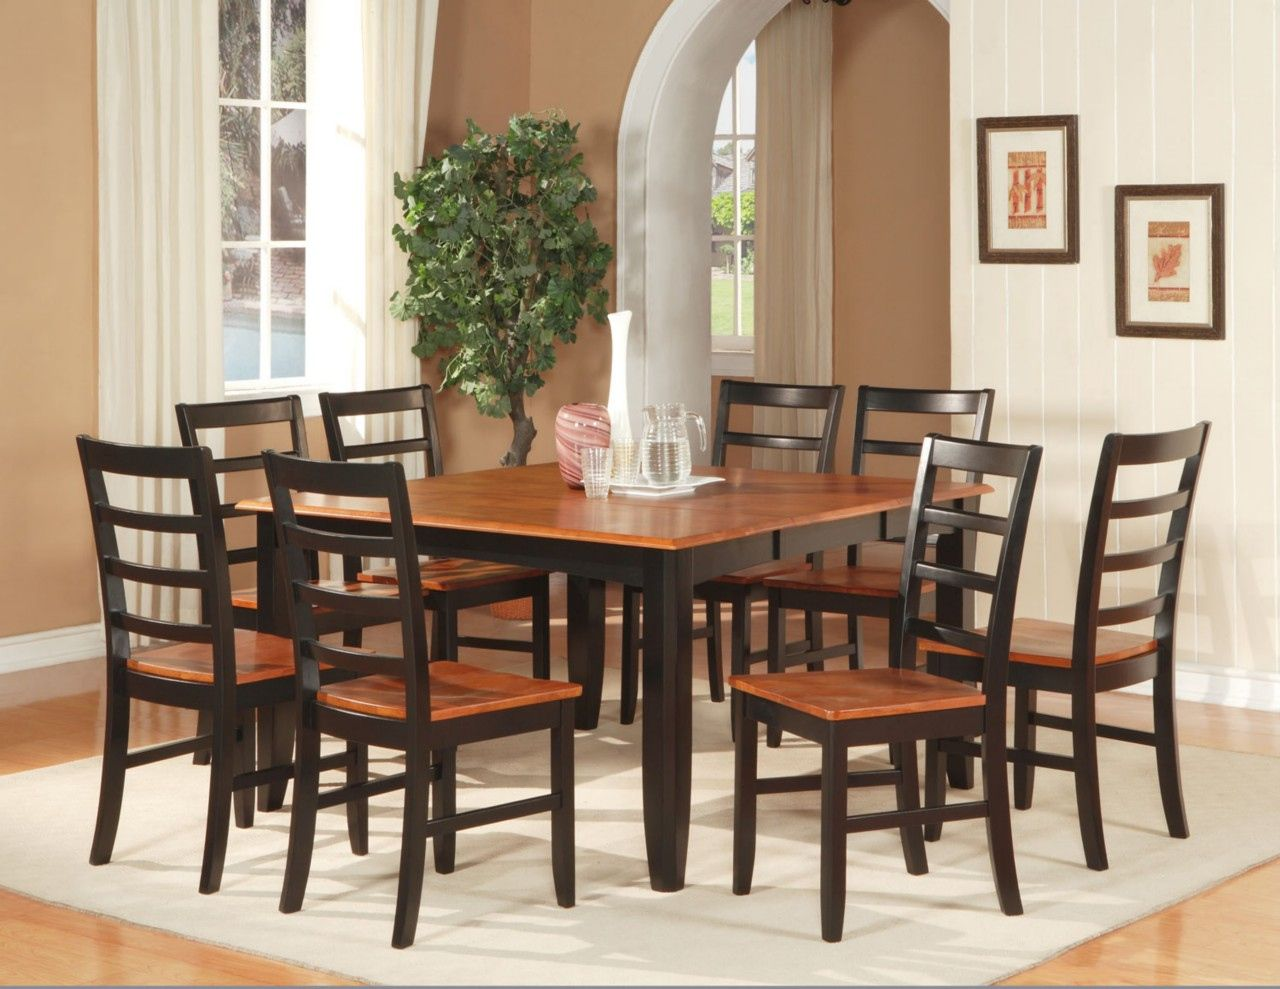 Cheap Dining Room Furniture Sets  Modern Used Furniture Check Gorgeous Discounted Dining Room Sets Inspiration